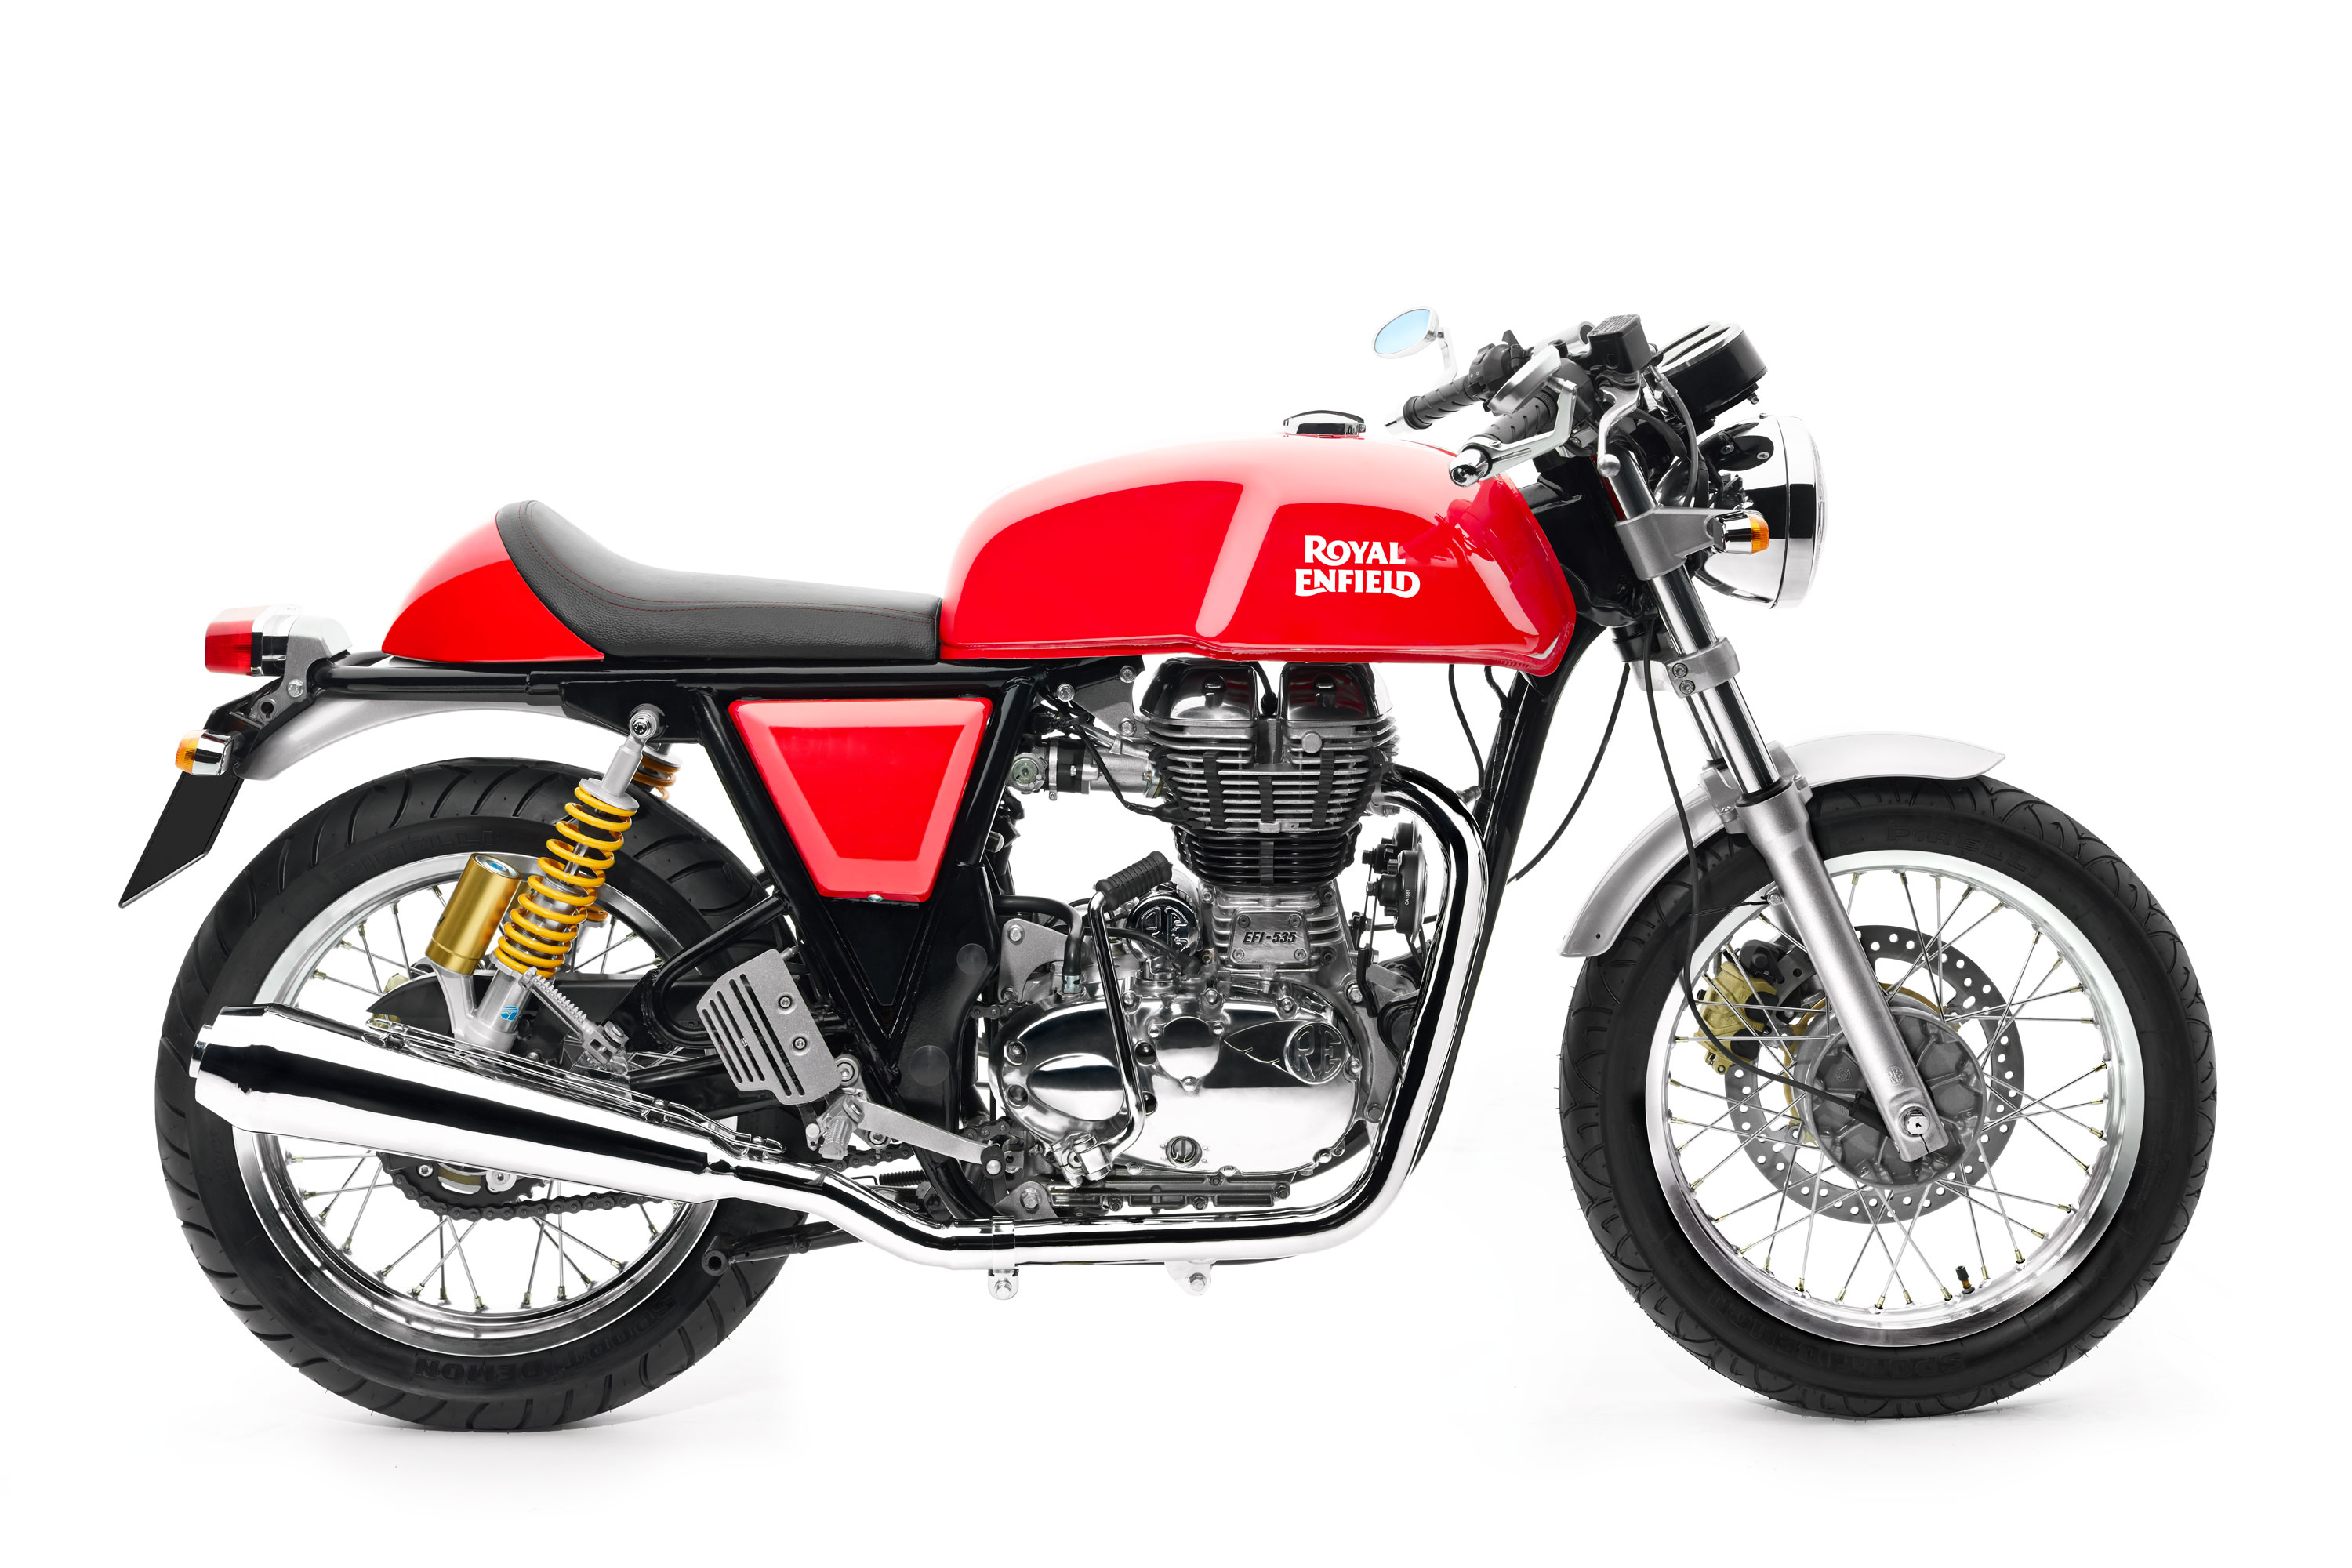 Royal Enfield World Motorrad GT Continental EFI 535 Rot